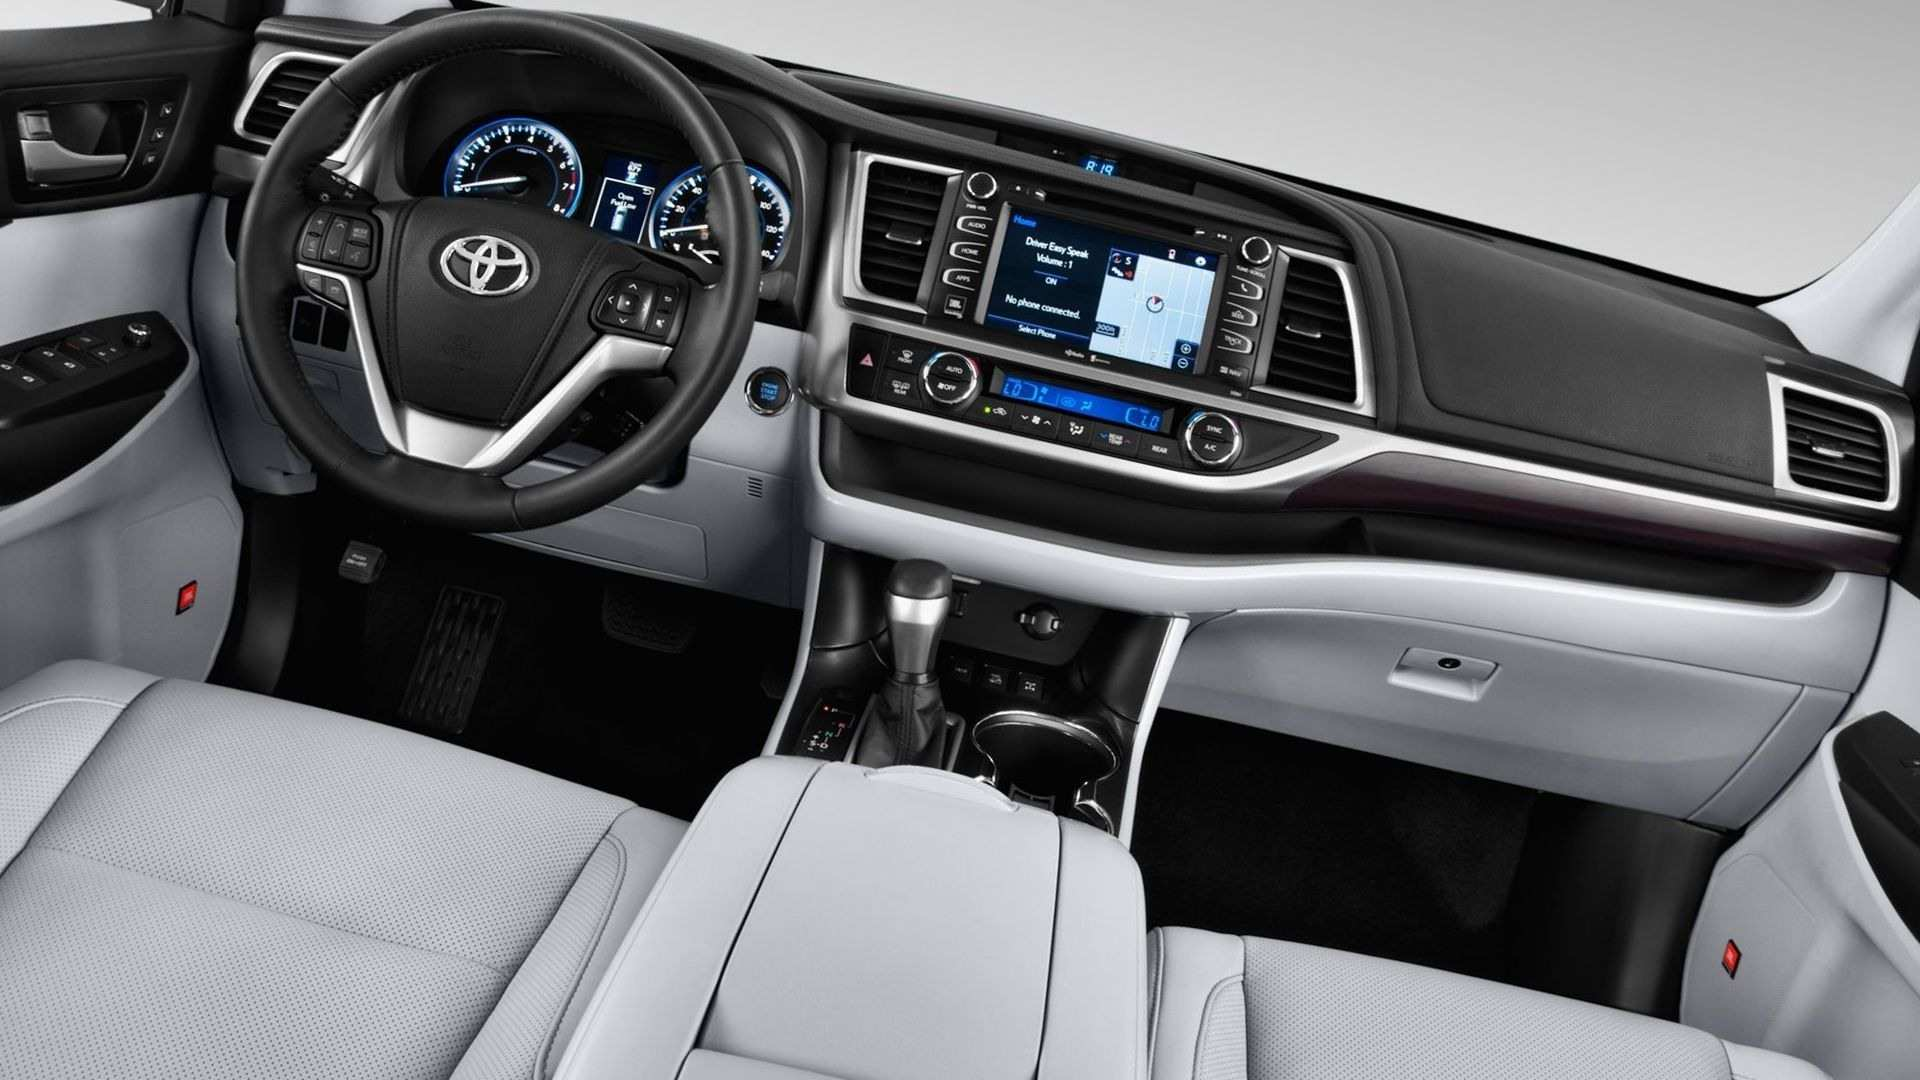 96 Gallery of The Toyota Highlander 2019 Redesign Concept Speed Test with The Toyota Highlander 2019 Redesign Concept